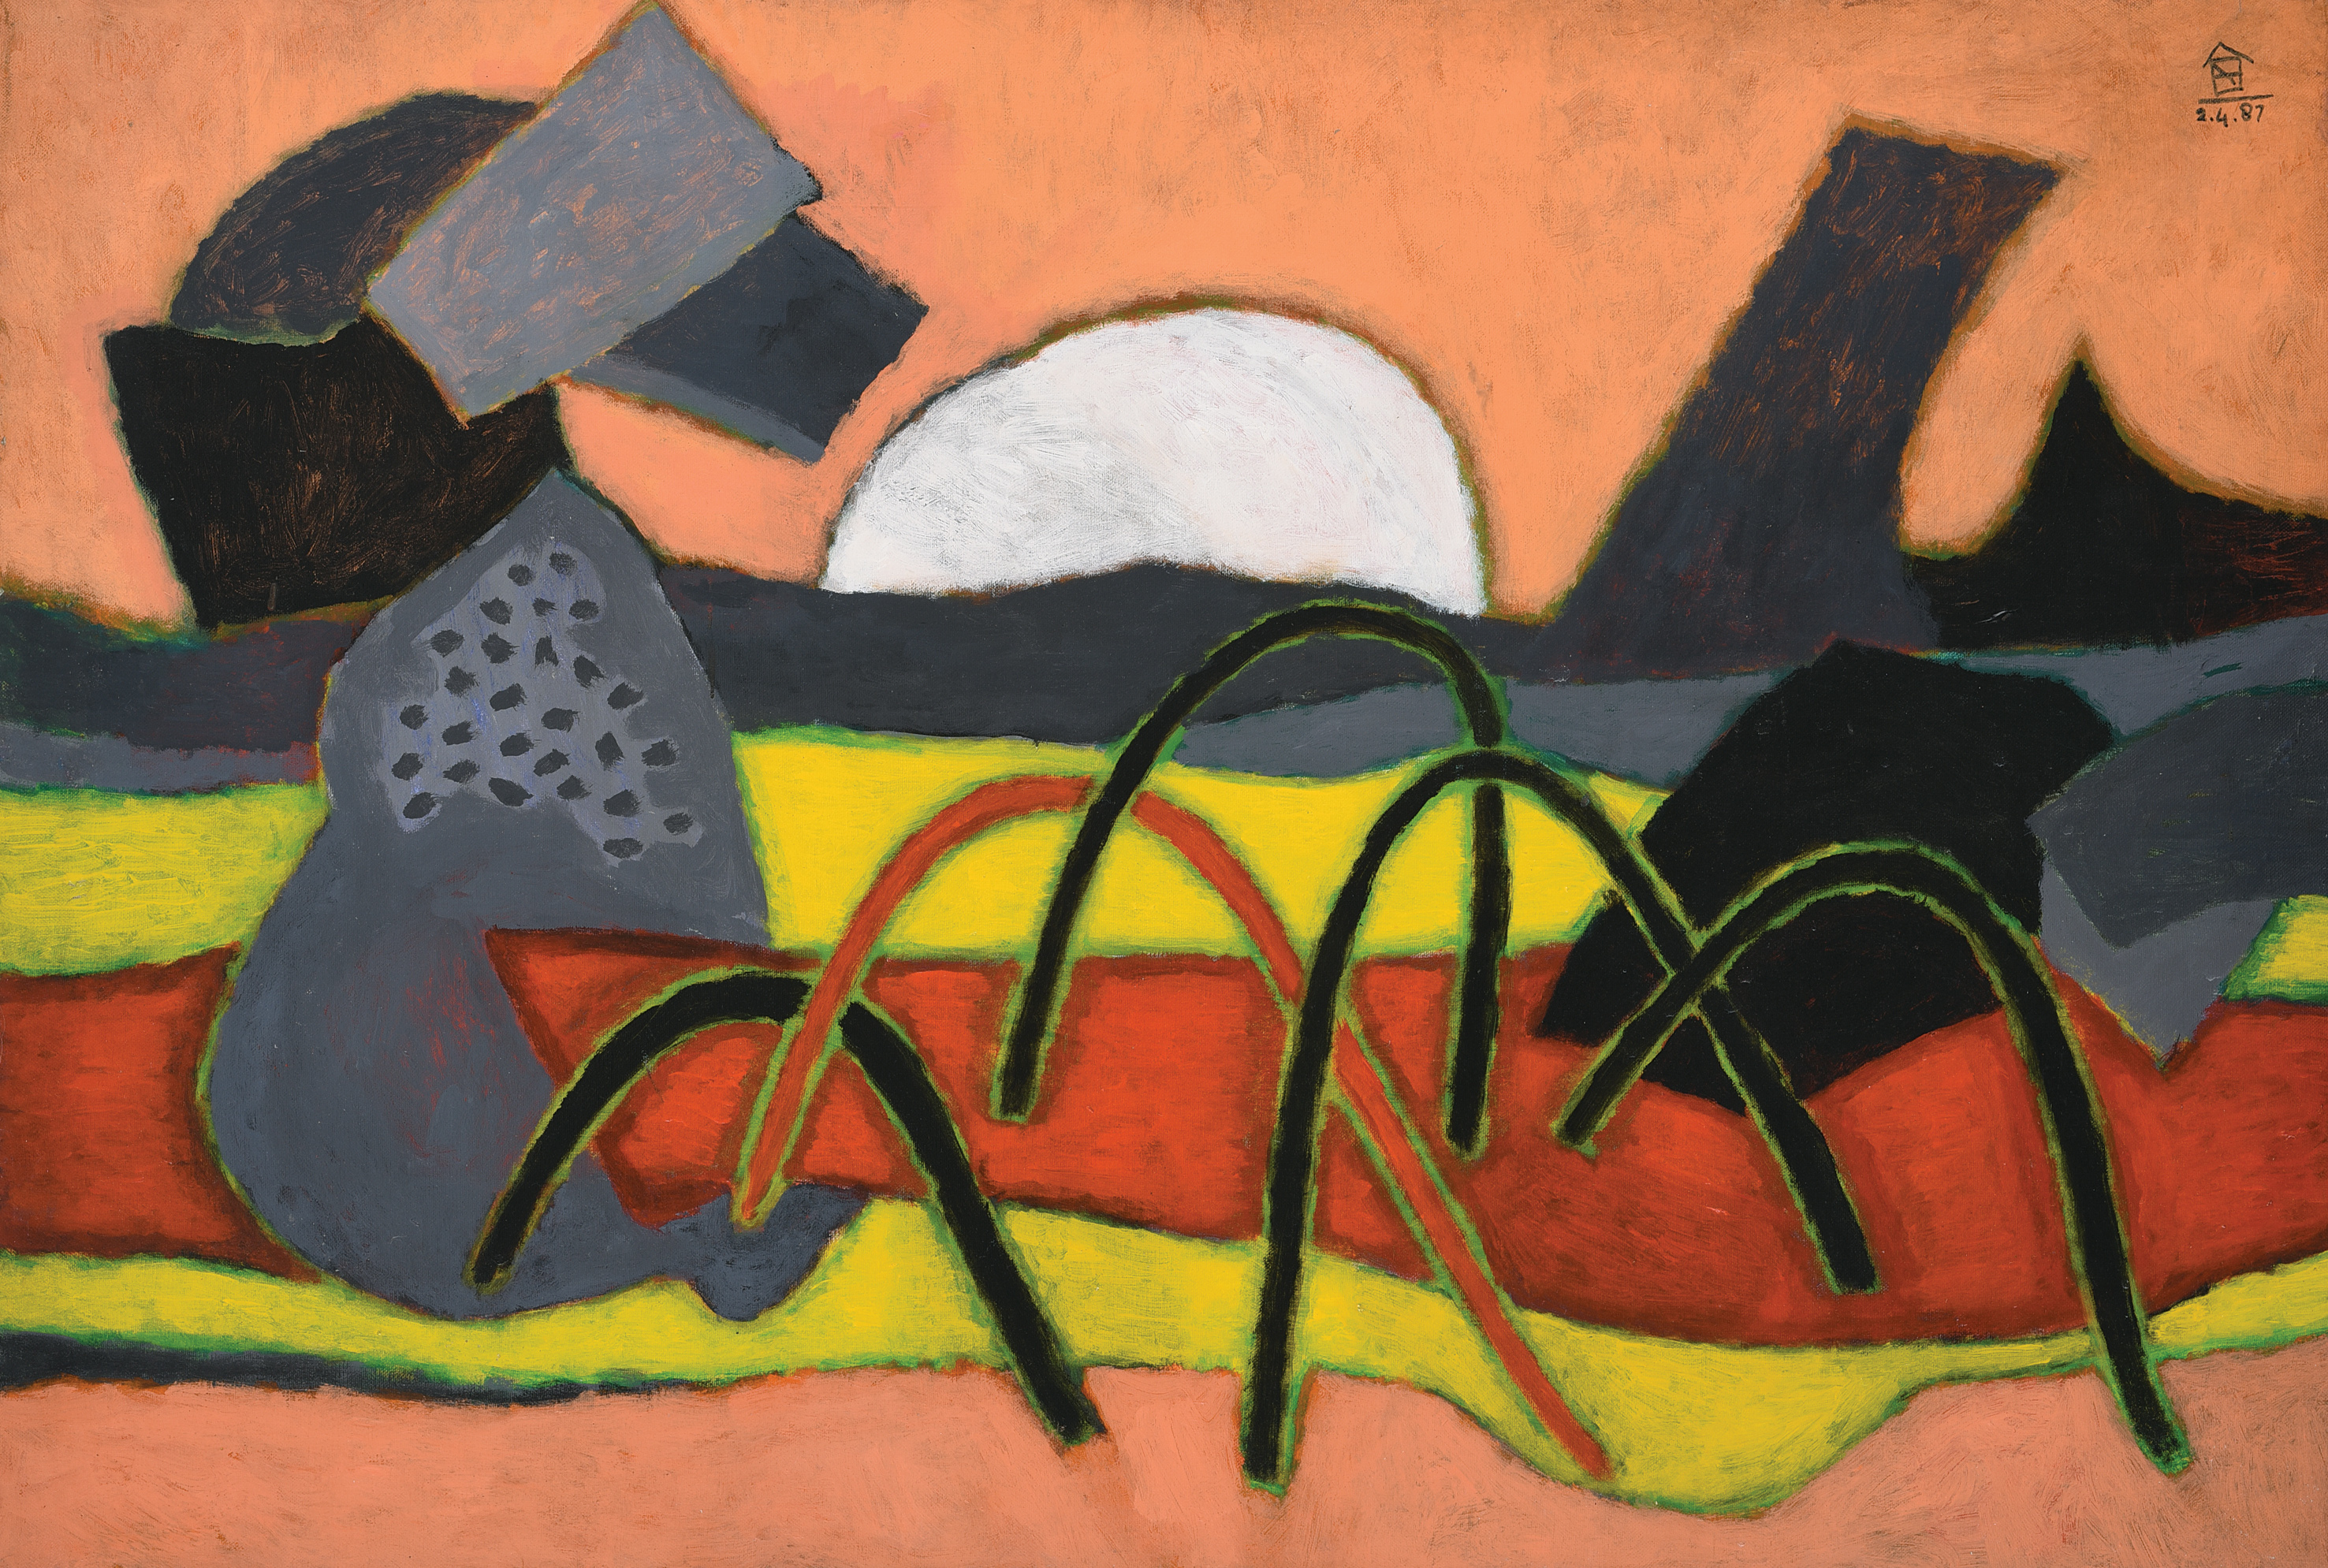 Nashar, By the Shore, oil on canvas, 64.5 x 94 cm, 1987